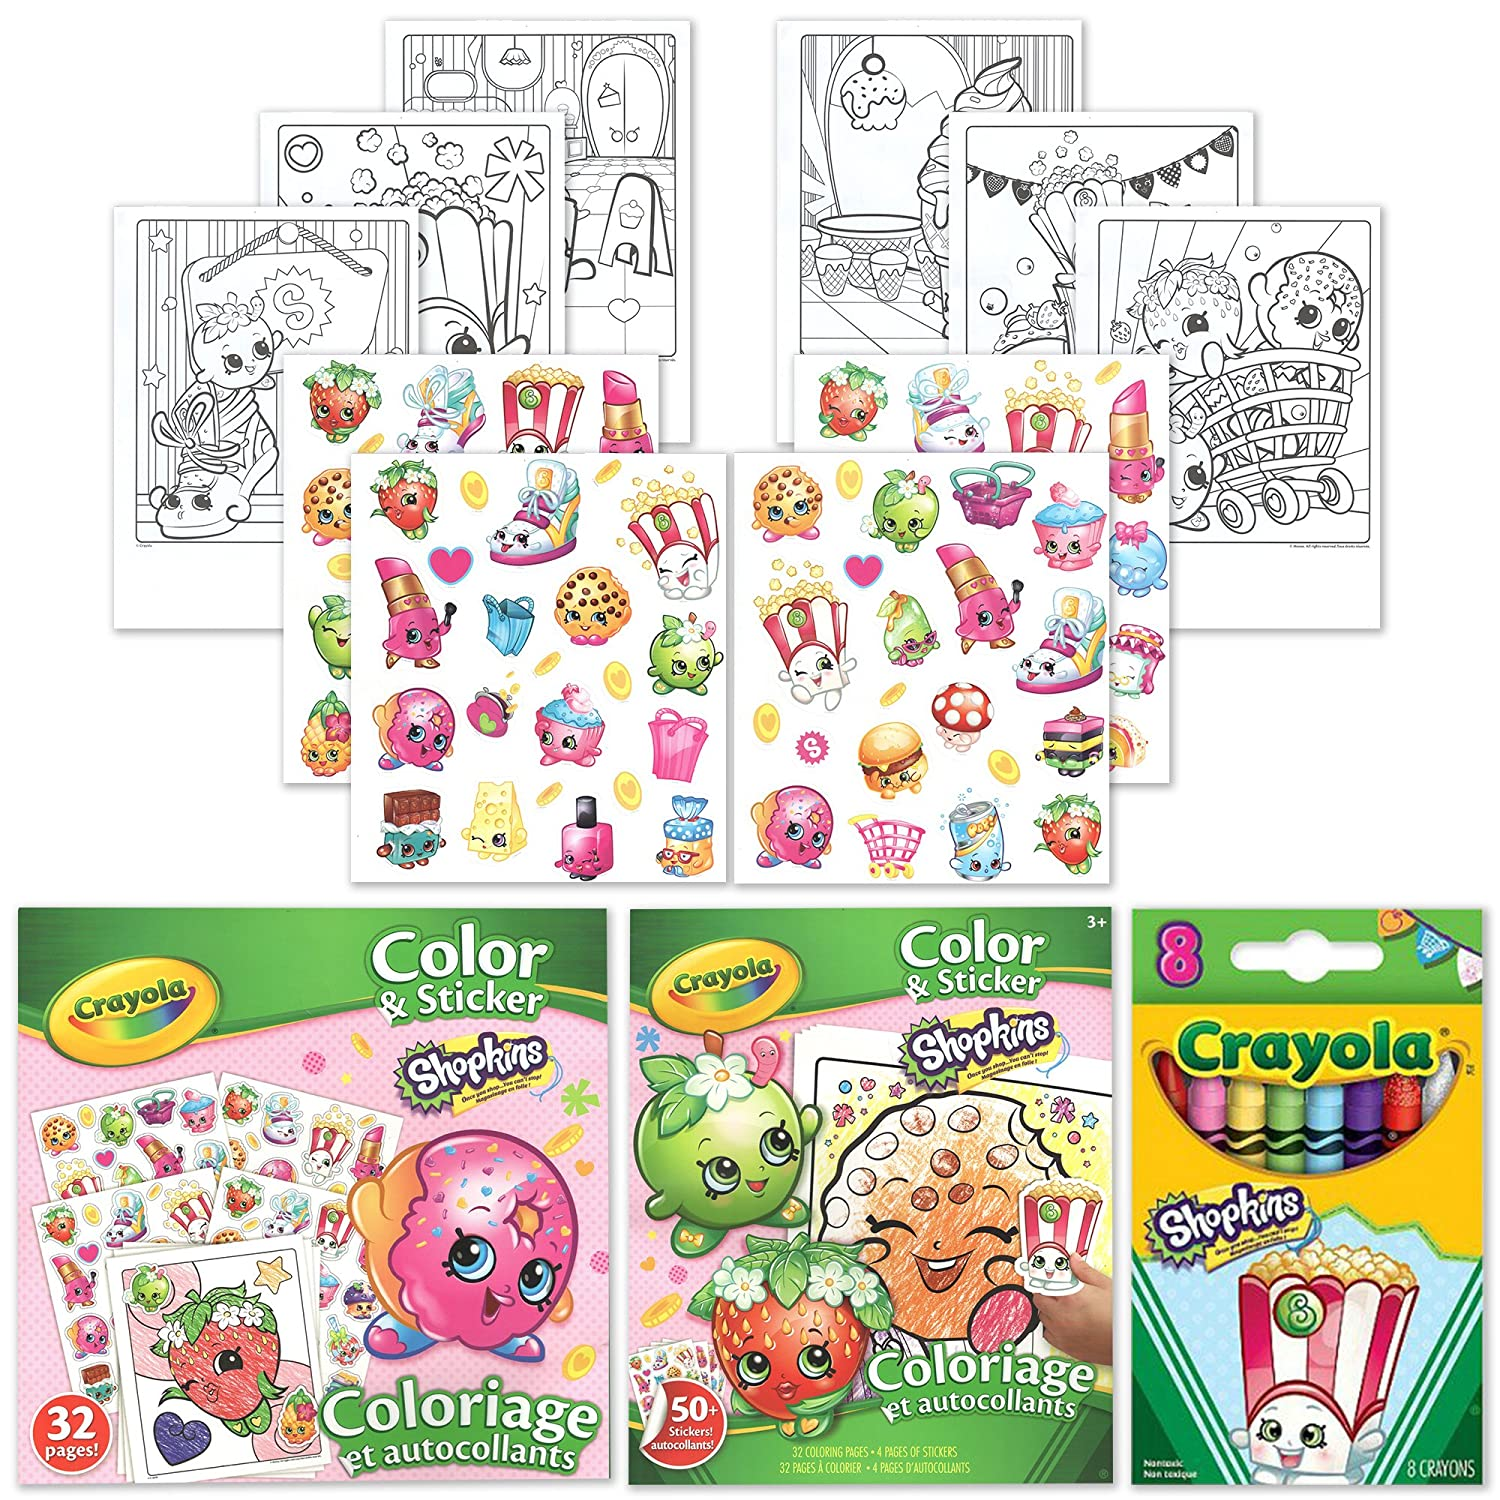 shopkins 50 stickers 32 coloring pages and 8 poppy corn crayola